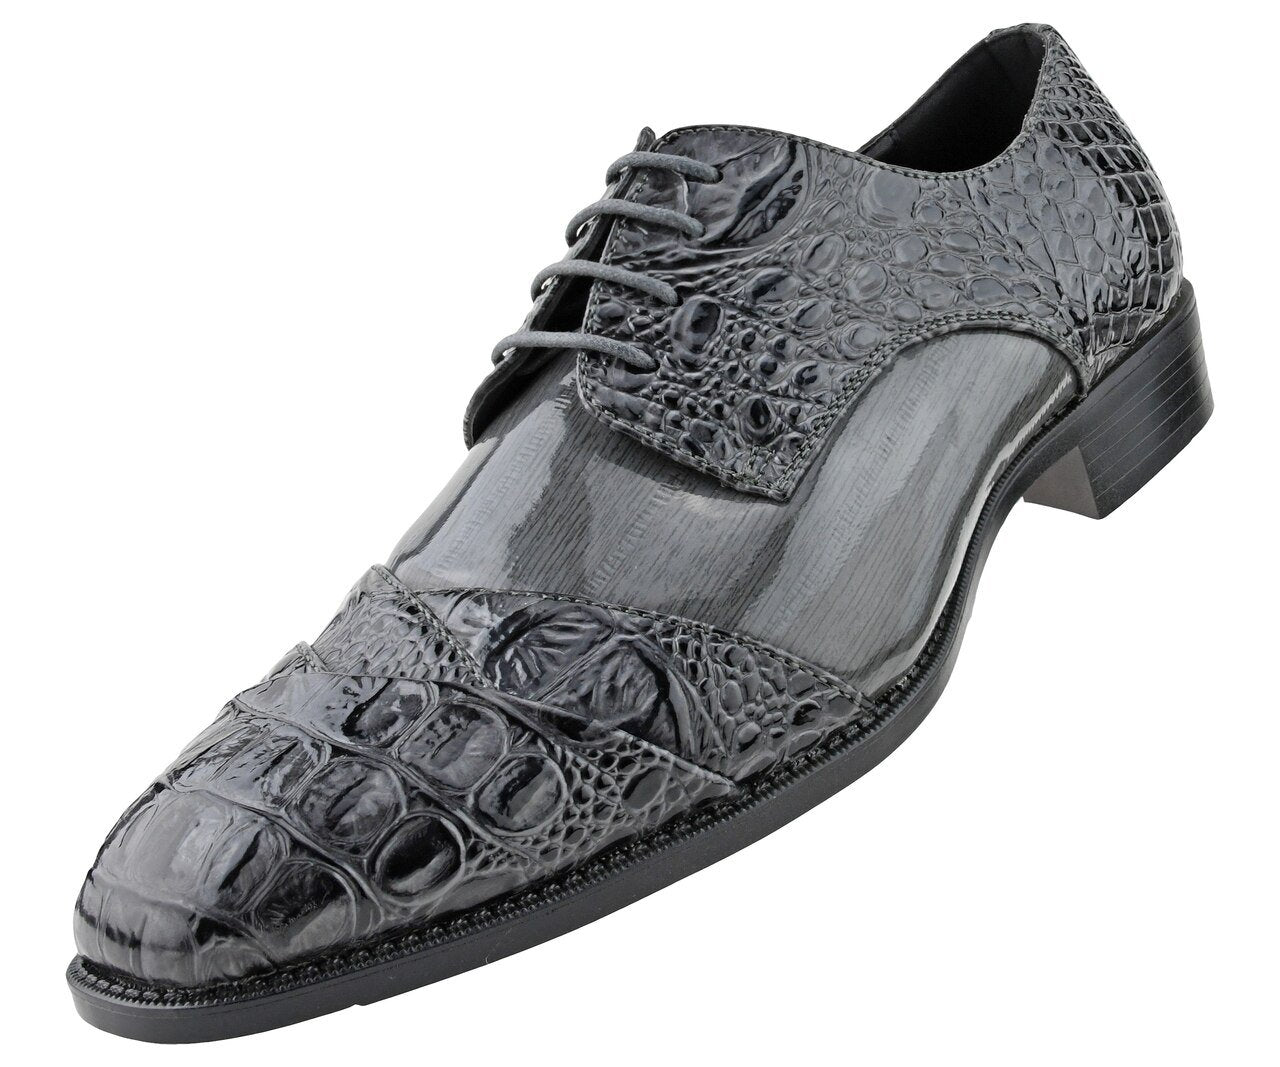 Men Dress Shoes-Alligator-Grey - Church Suits For Less